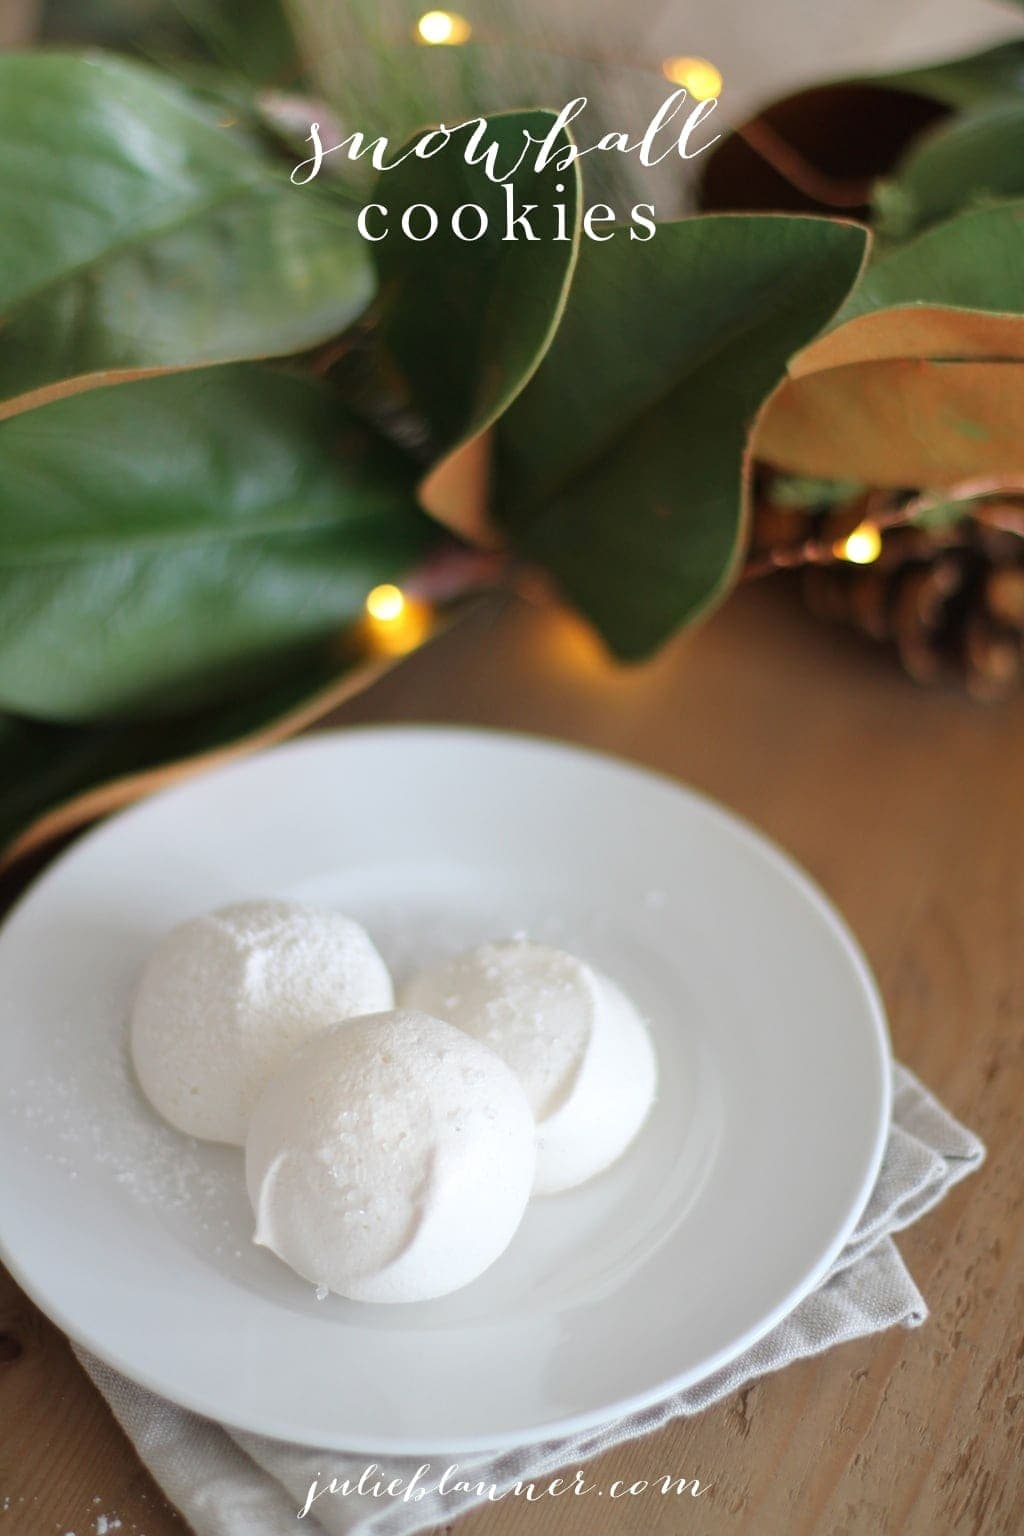 Snowball cookie recipe - a beautiful, crunchy cookie at just 30 calories each!